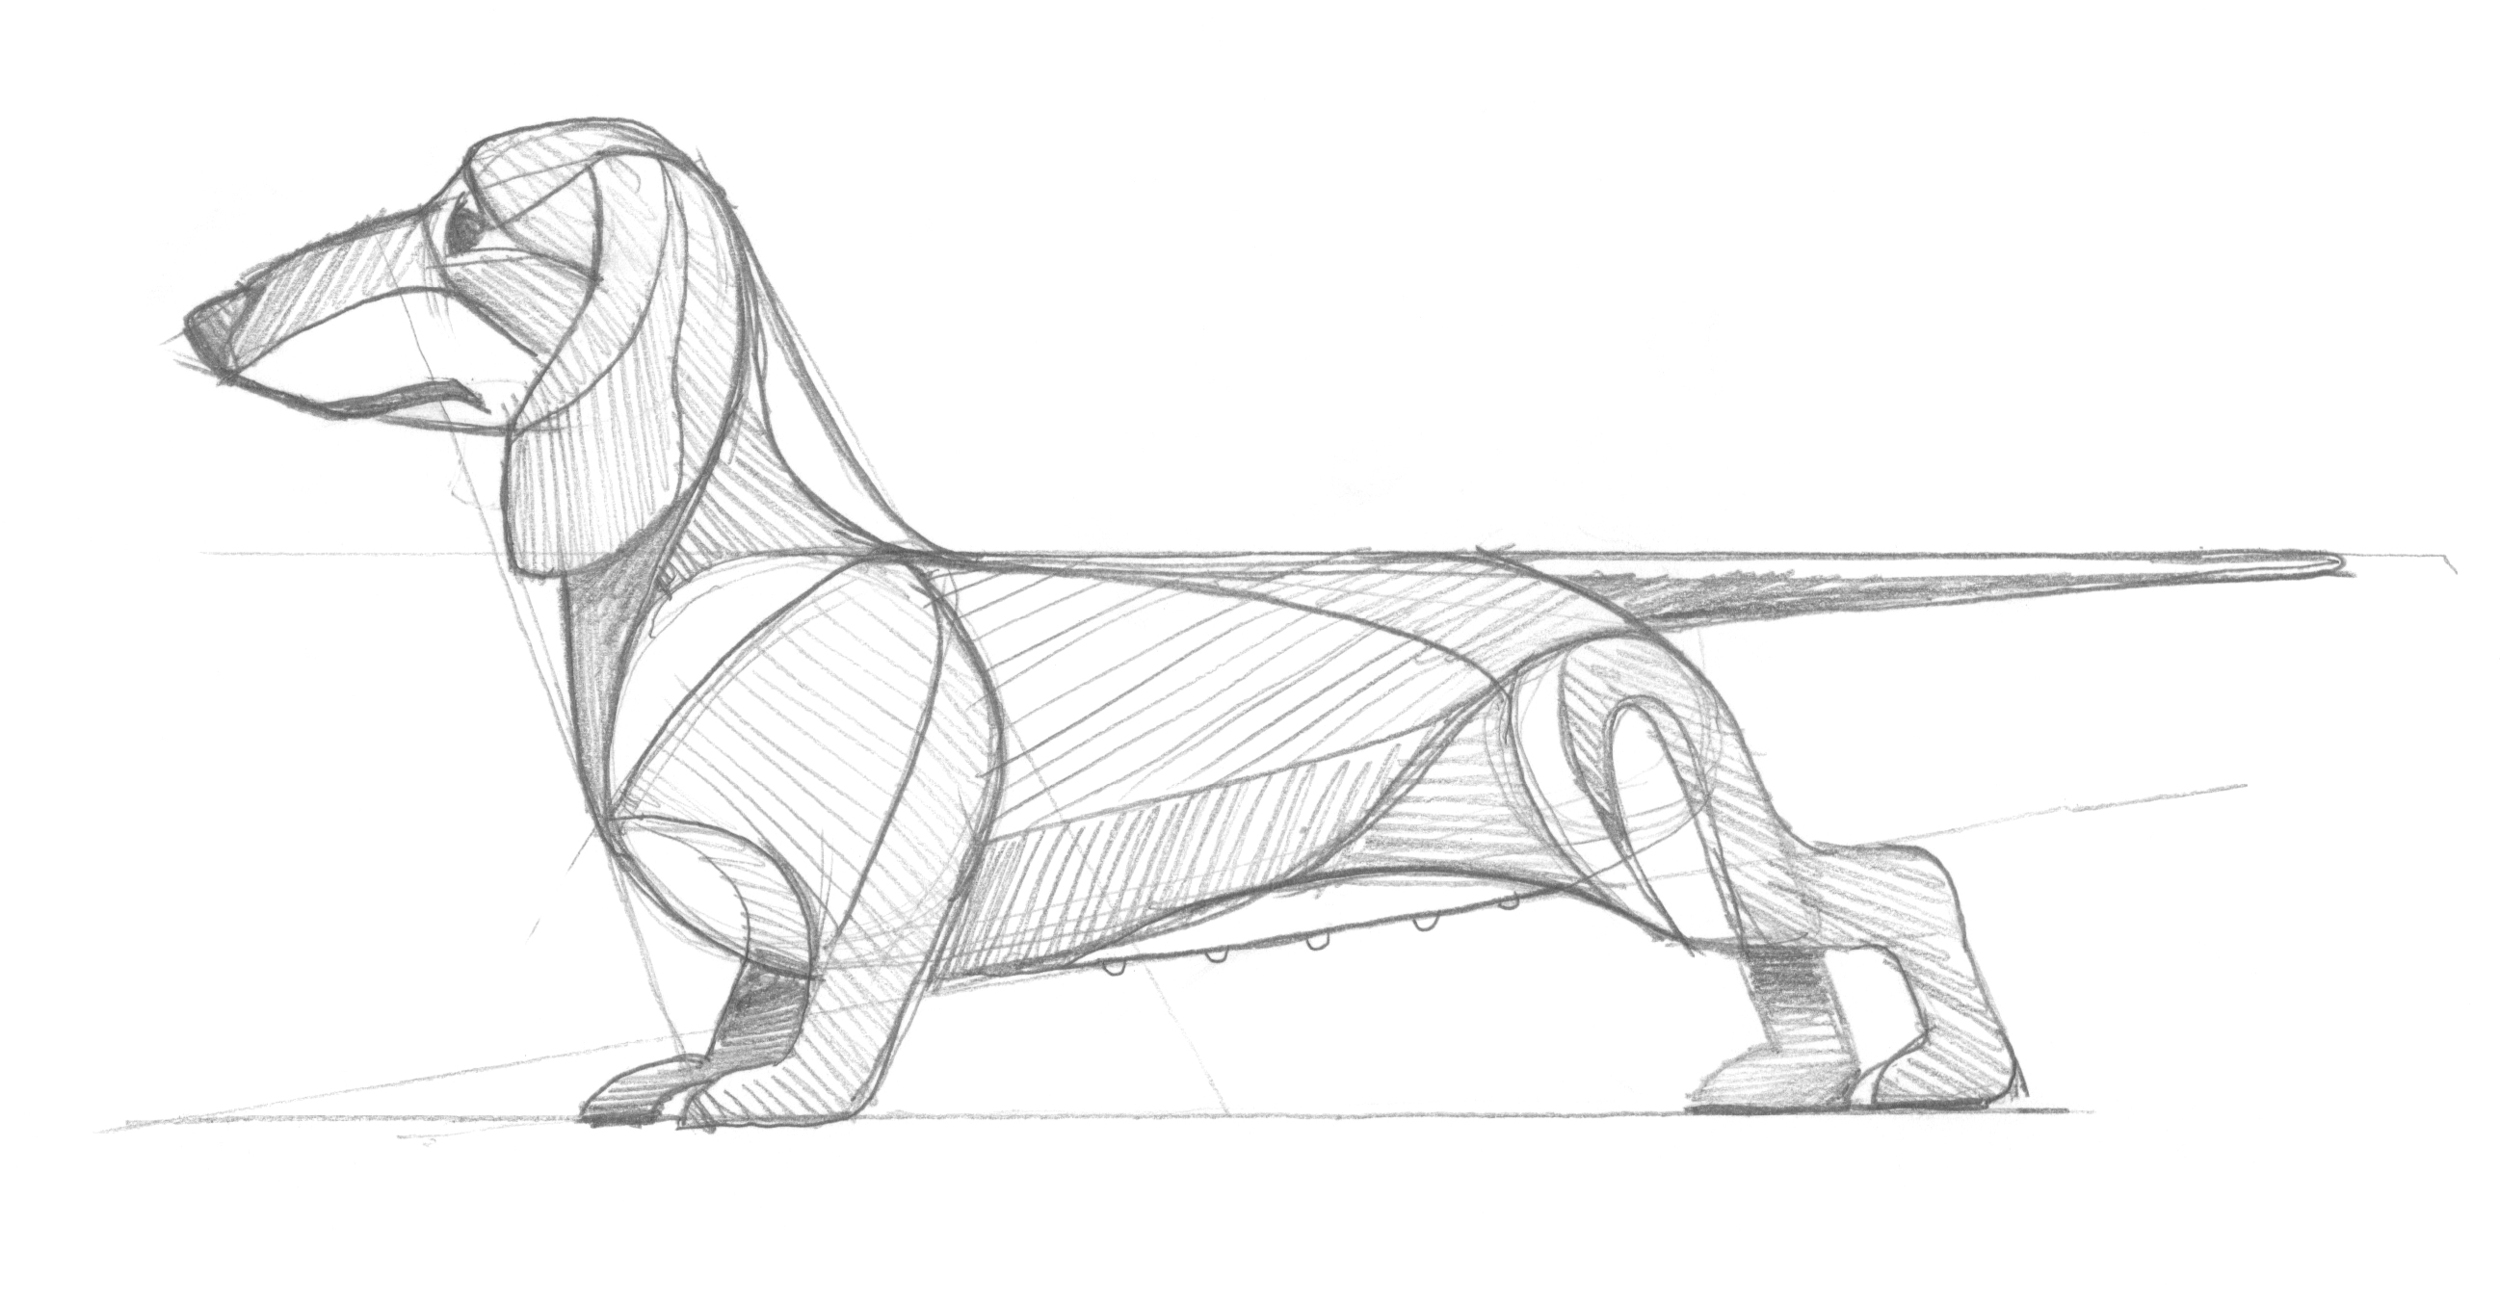 Dachshund Sketch by DKNG